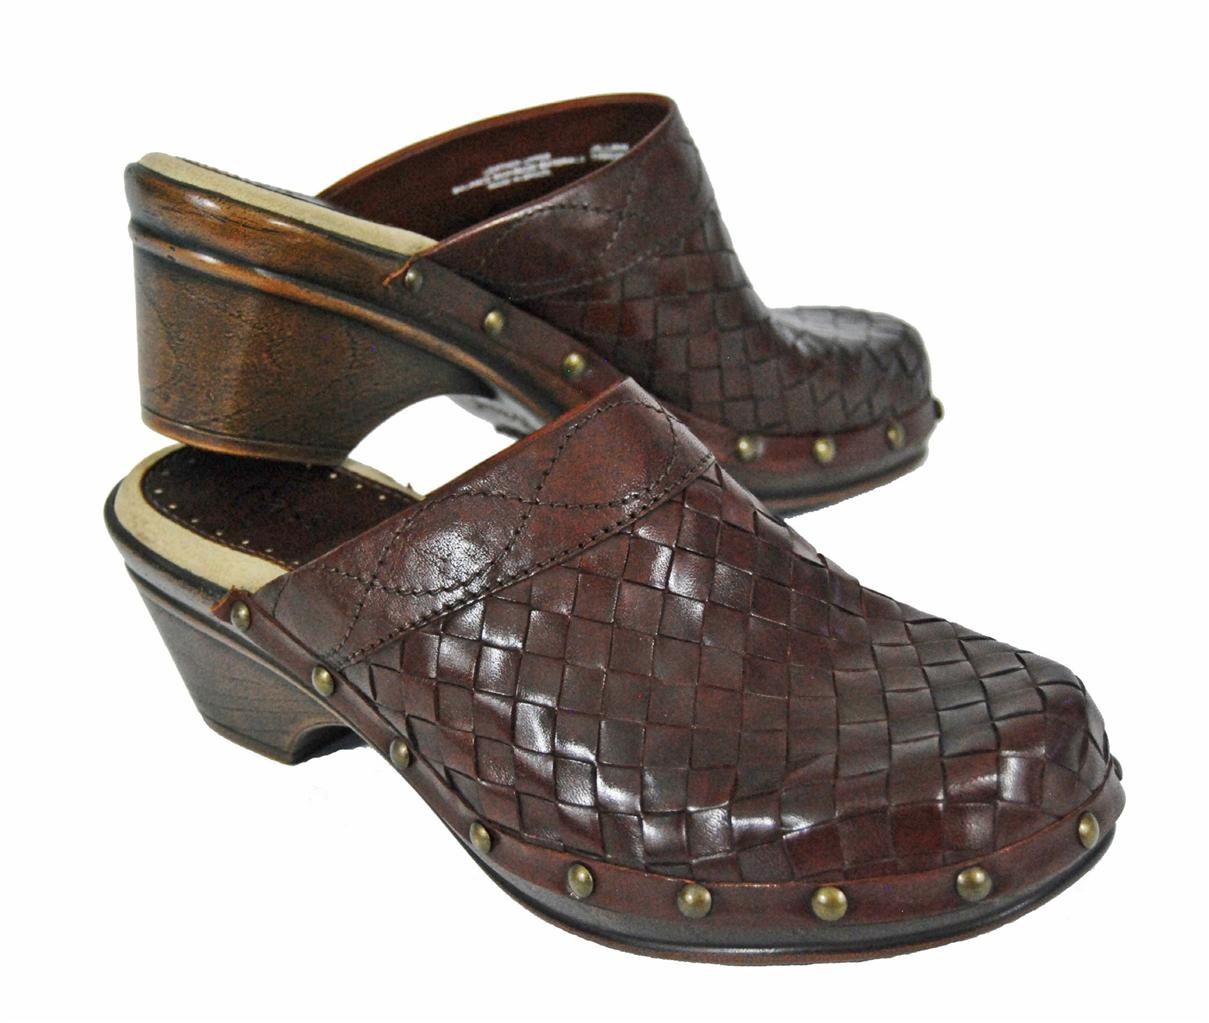 NEW-BASS-WOMENS-JILLIAN-BROWN-LUGGAGE-WOVEN-LEATHER-CLOGS-MULES-SHOES